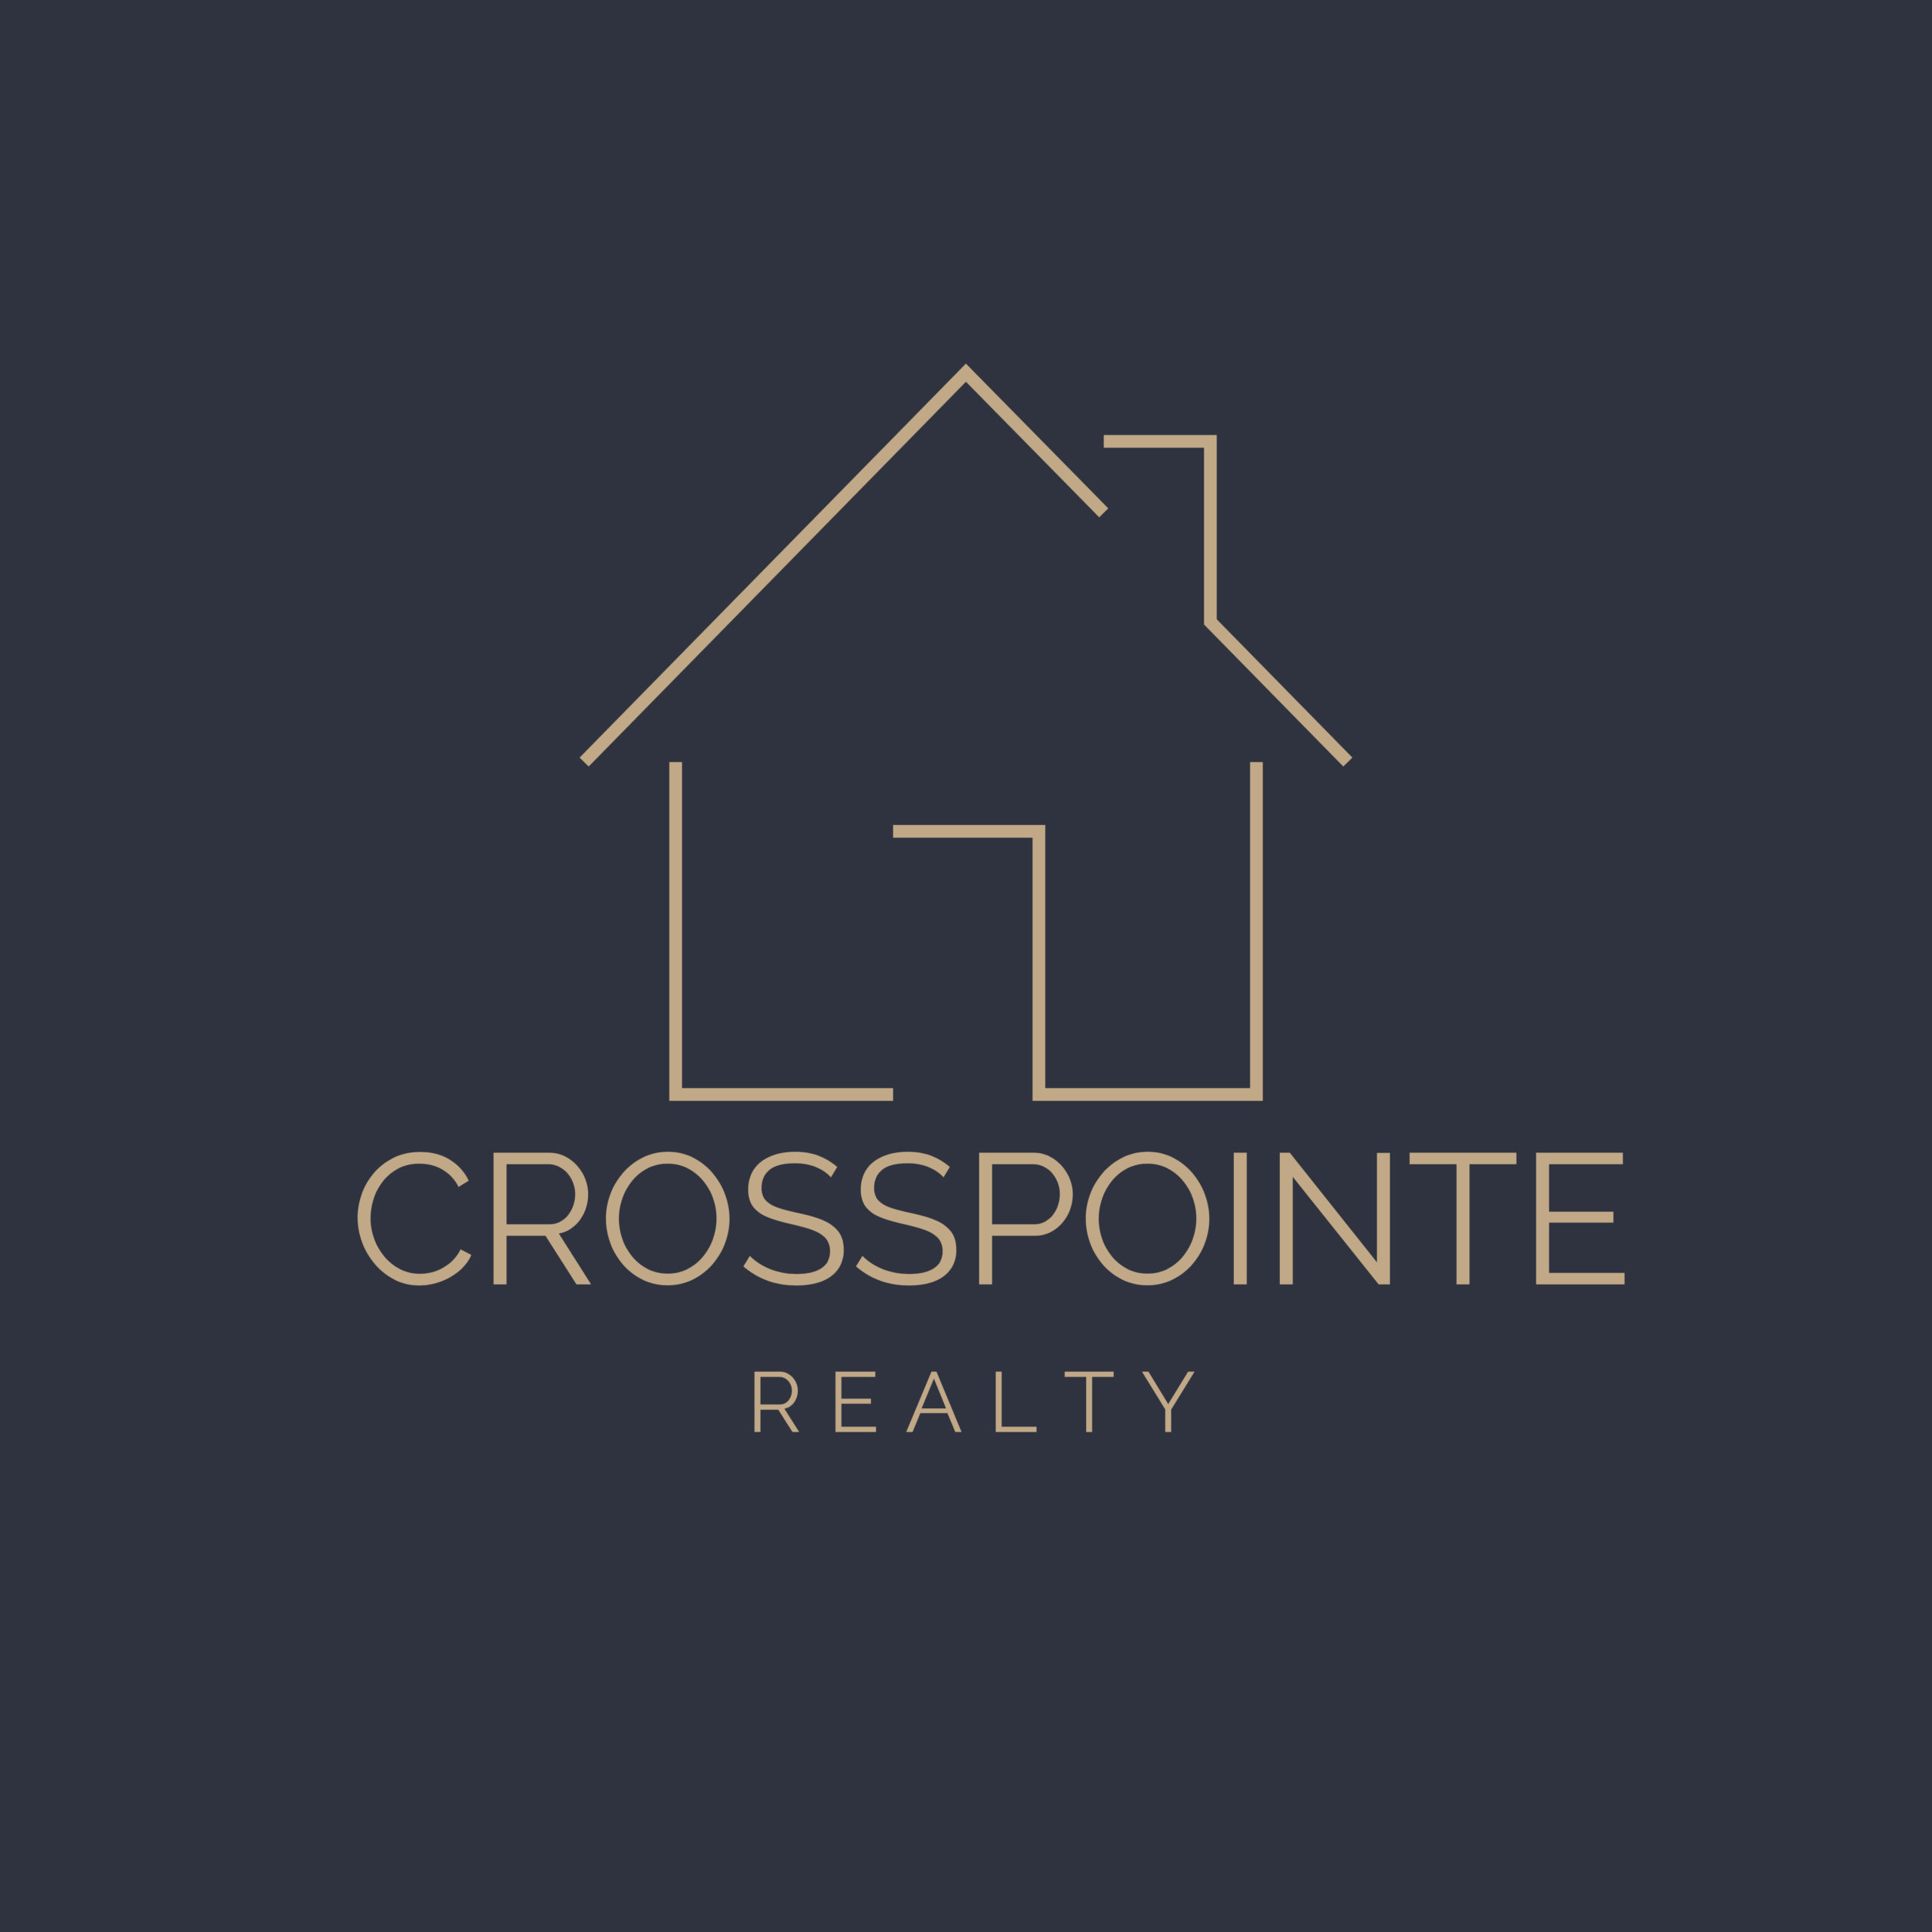 CrossPointe Realty